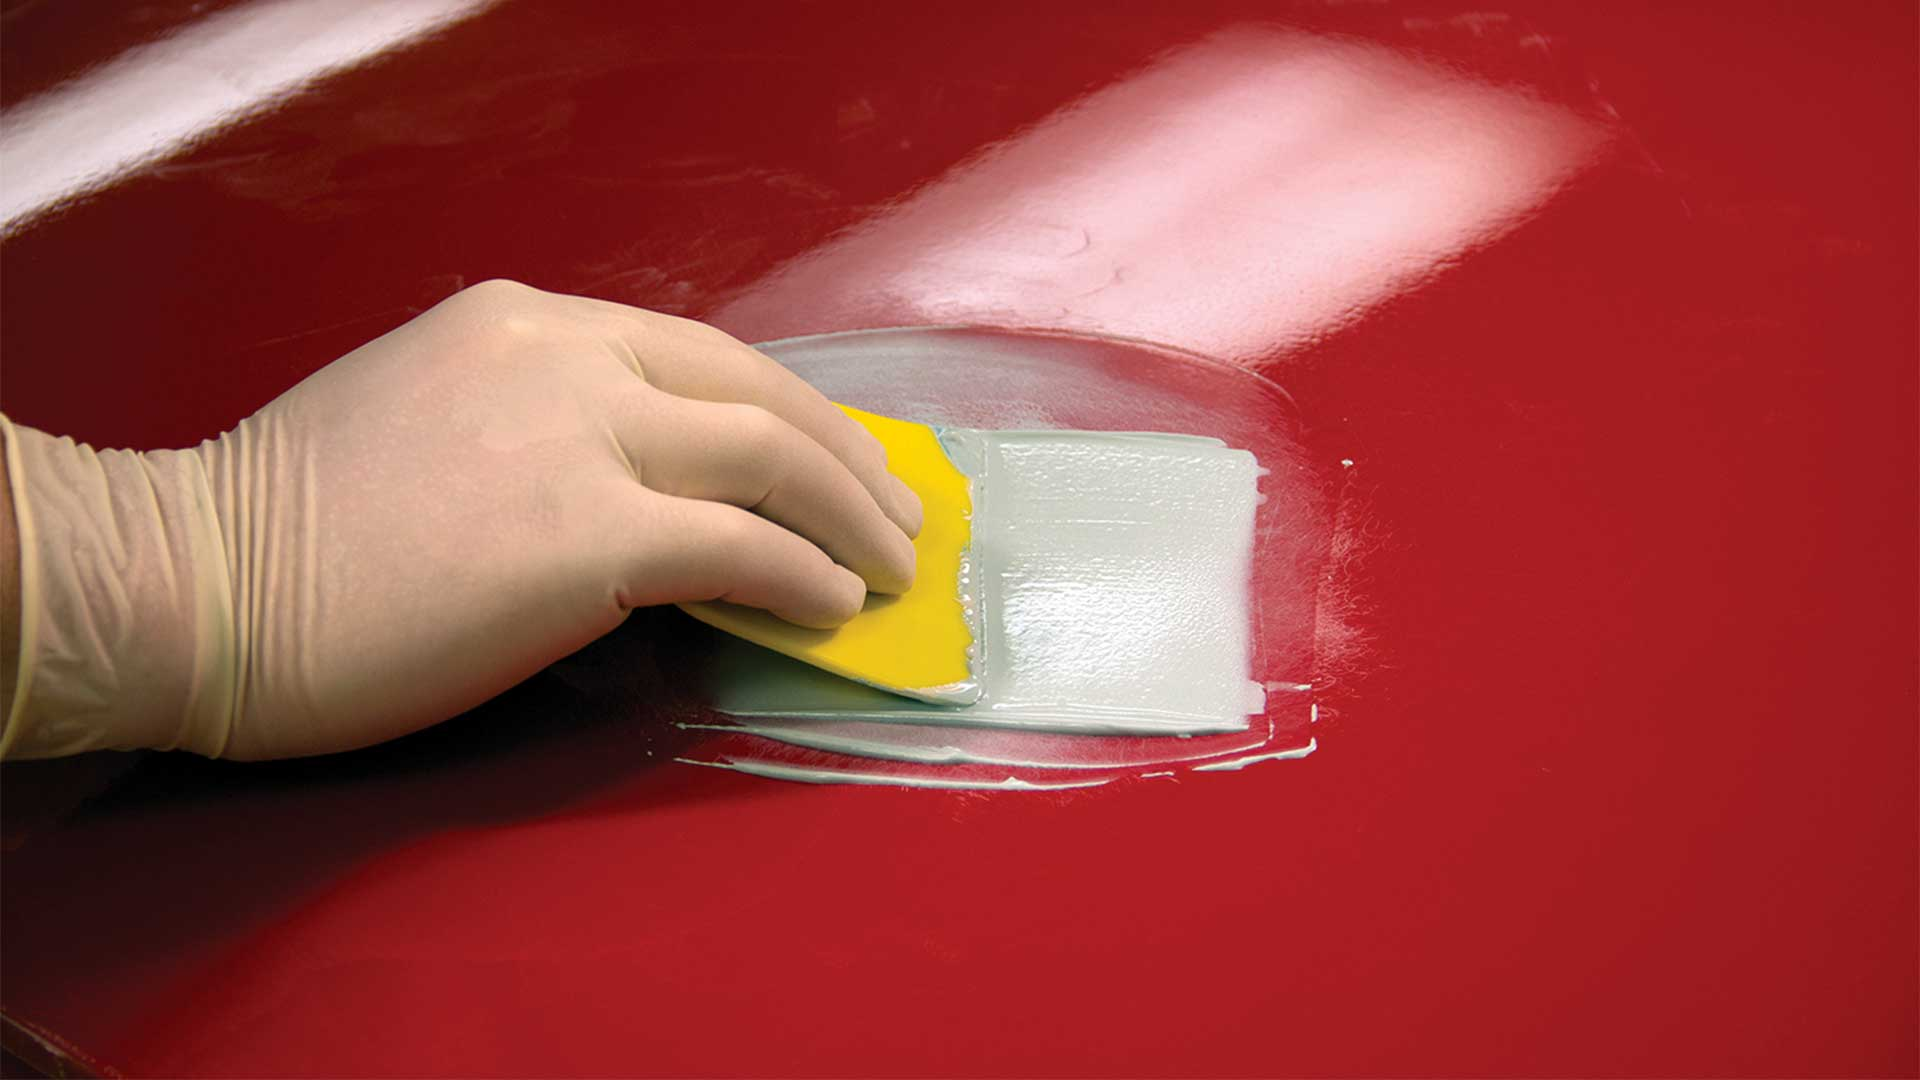 Evercoat Rage Ultra on red surface